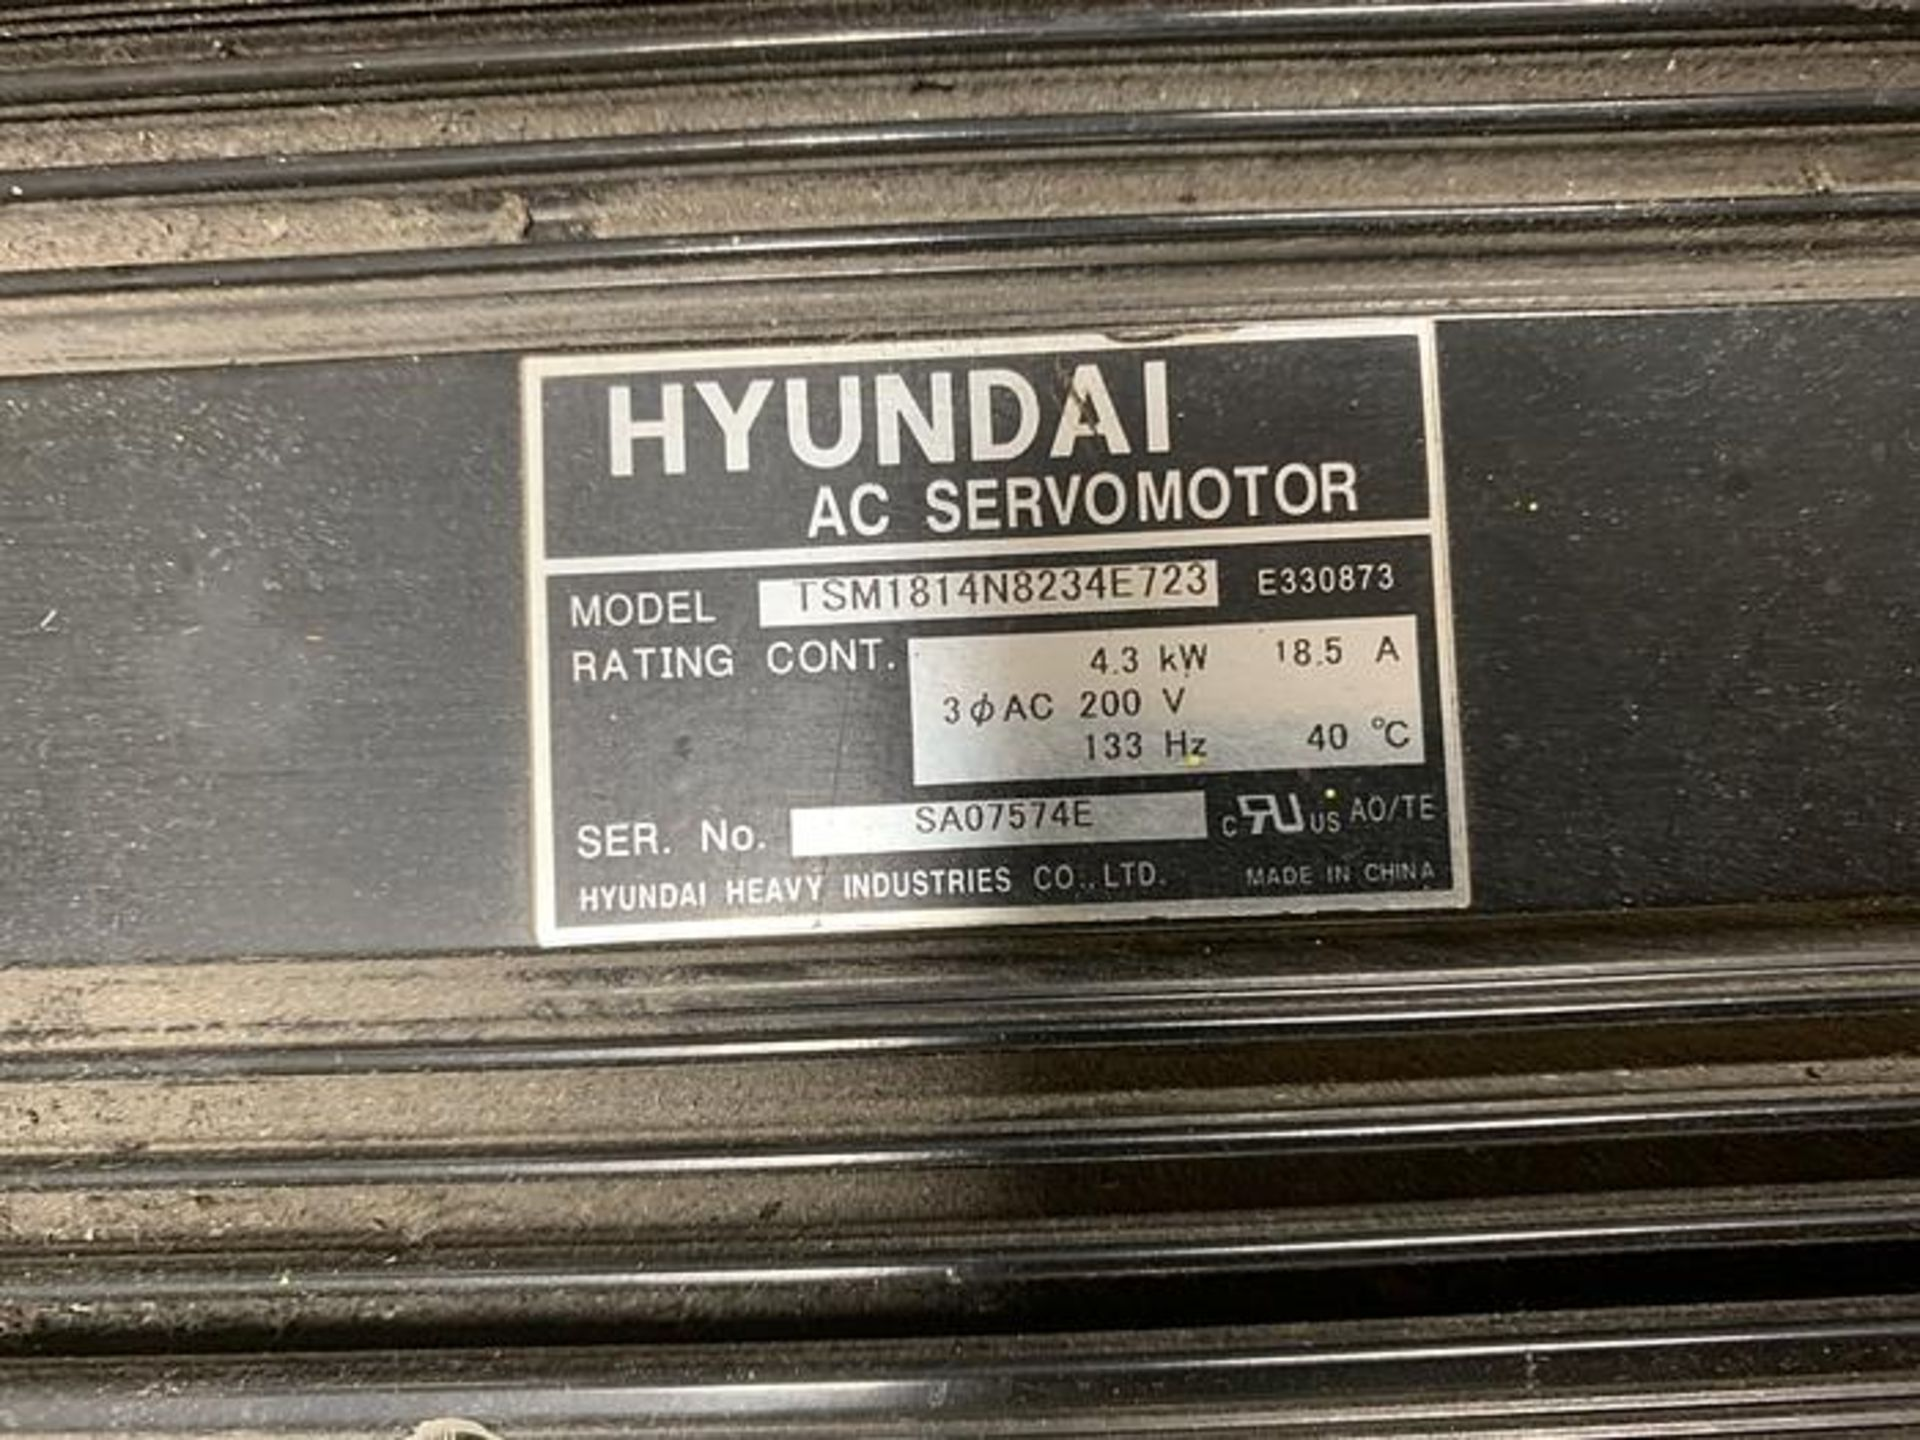 HYUNDIA MODEL HX400 400KG X 2573MM H REACH WITH Hi5-N80U CONTROLLER 6 AXIS CNC ROBOT, YEAR 2012 - Image 10 of 19